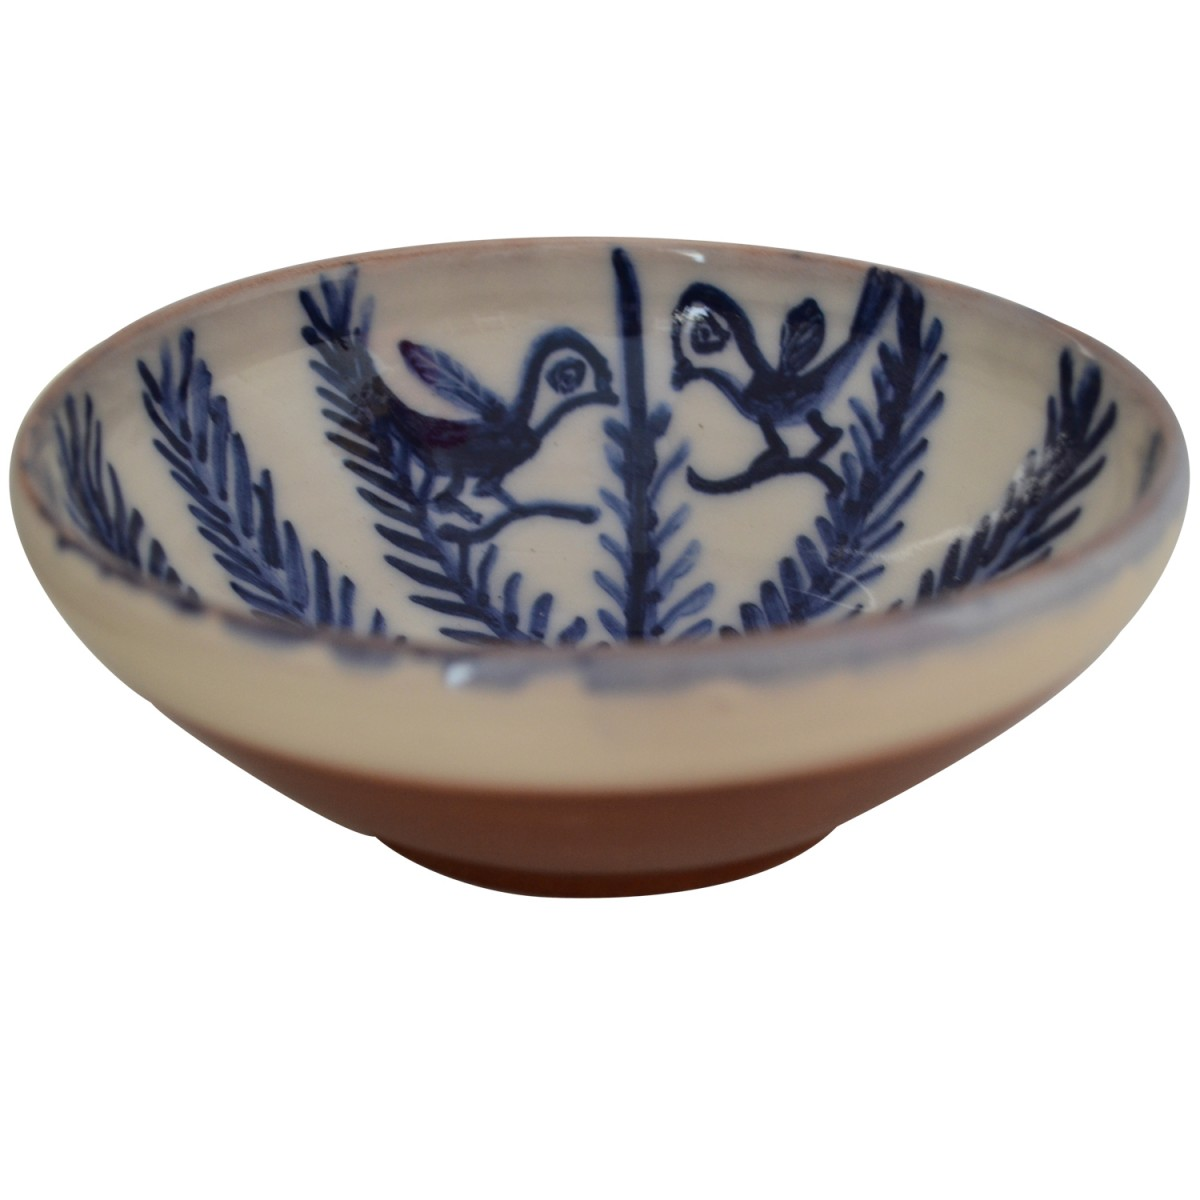 Handmade pottery bowls for sale-Bird's nest-5